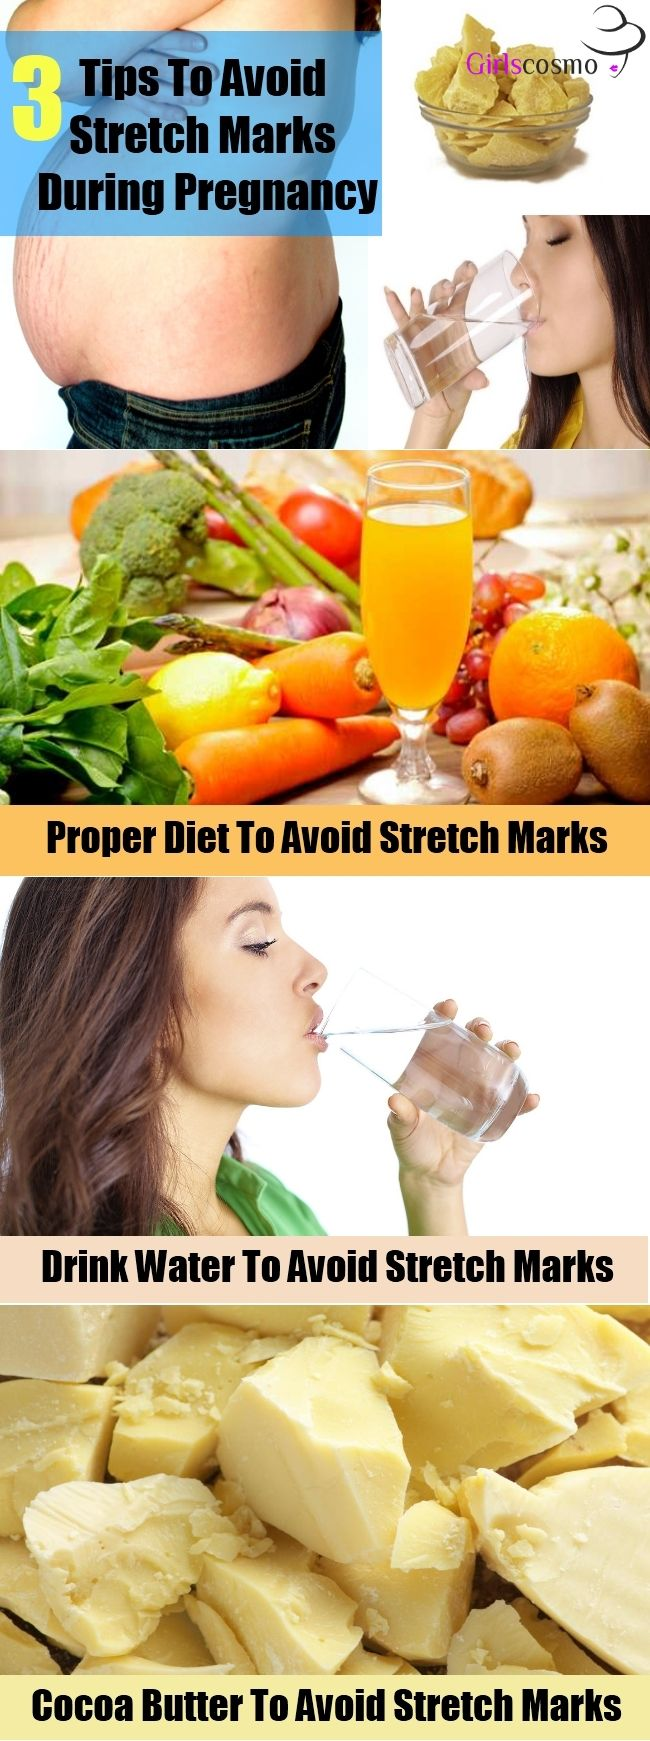 Tips To Prevent Stretch Marks During Pregnancy